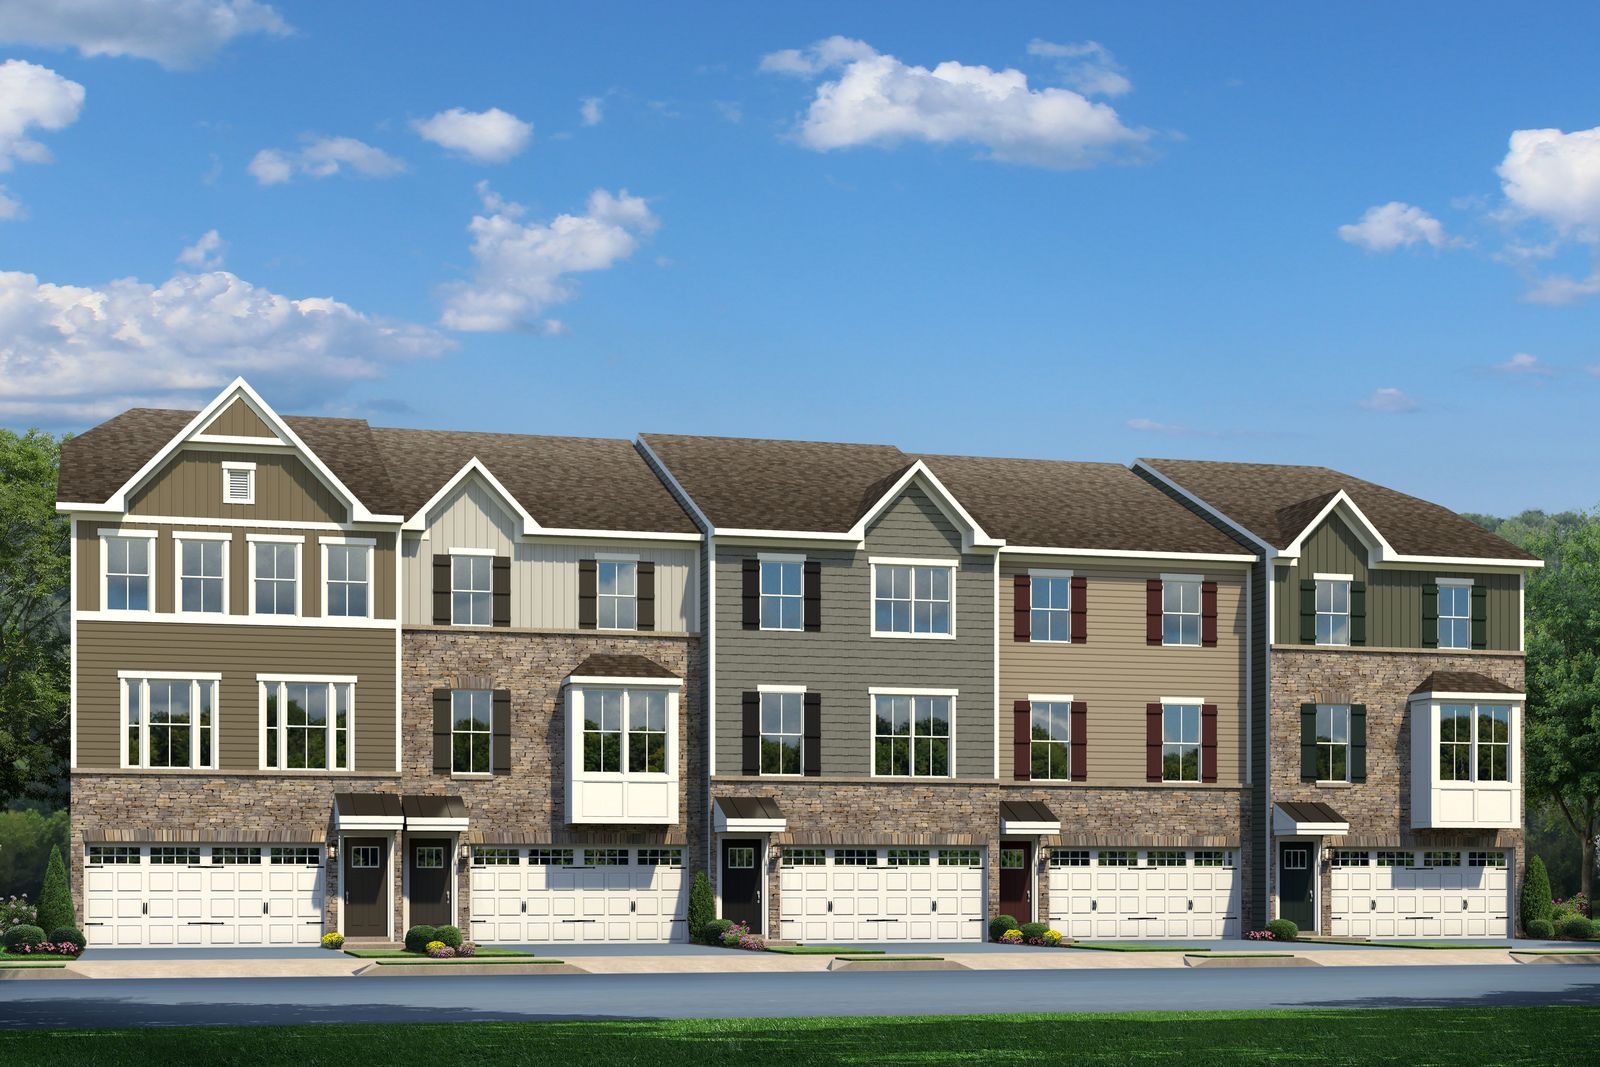 WELCOME TO HIGHPOINT AT DOWNINGTOWN:Theonly new townhomes with finished basements, located in Downingtown schools, minutes to Wegmans, from the mid $400s.Click here to join the VIP list for exclusive pricing and incentives!